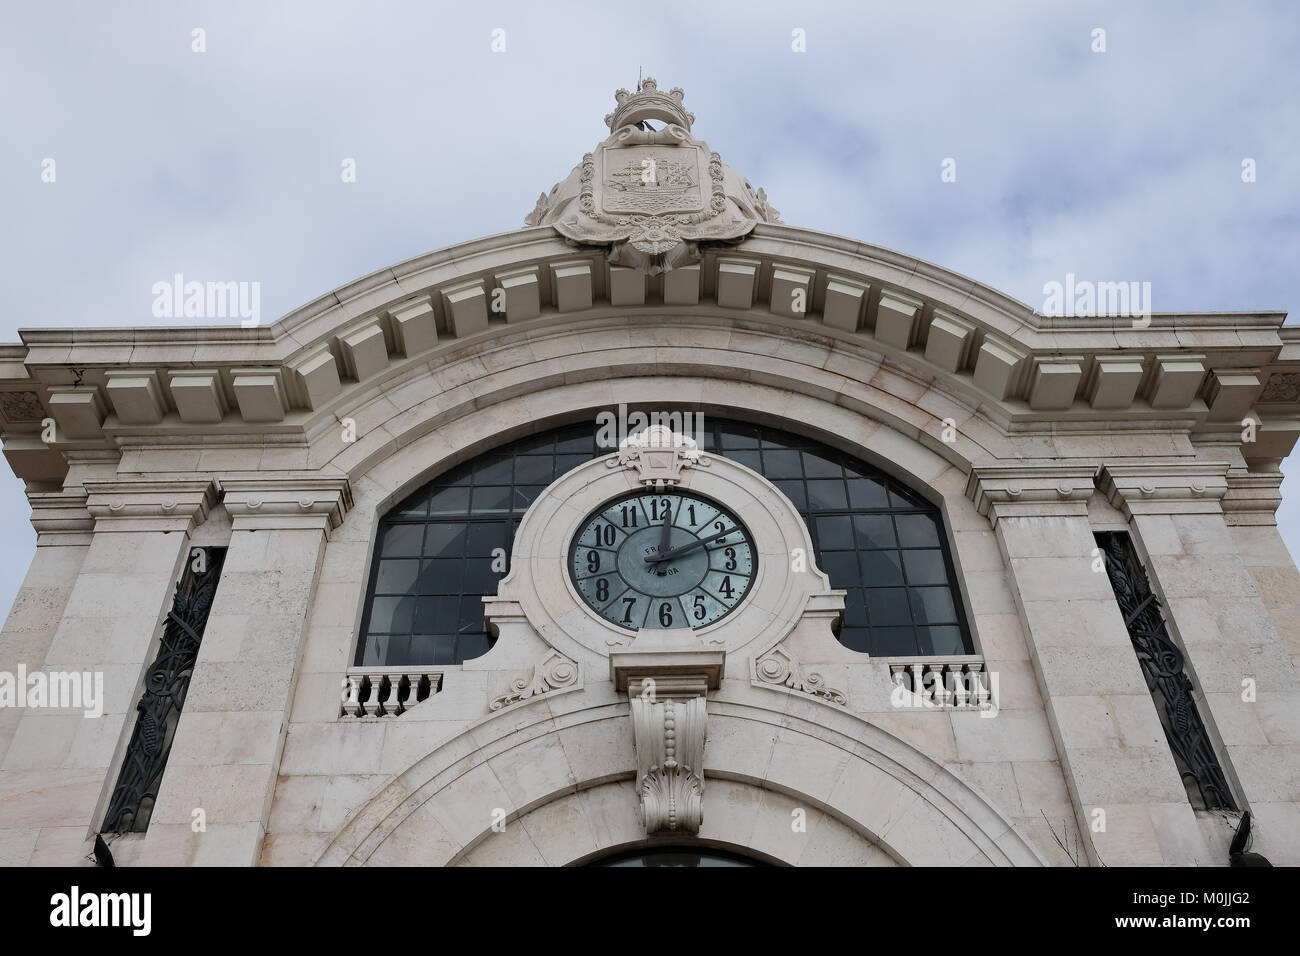 faced of the municipal market of Lisbon, Portugal showing a huge clock on it, lookup view - Stock Image